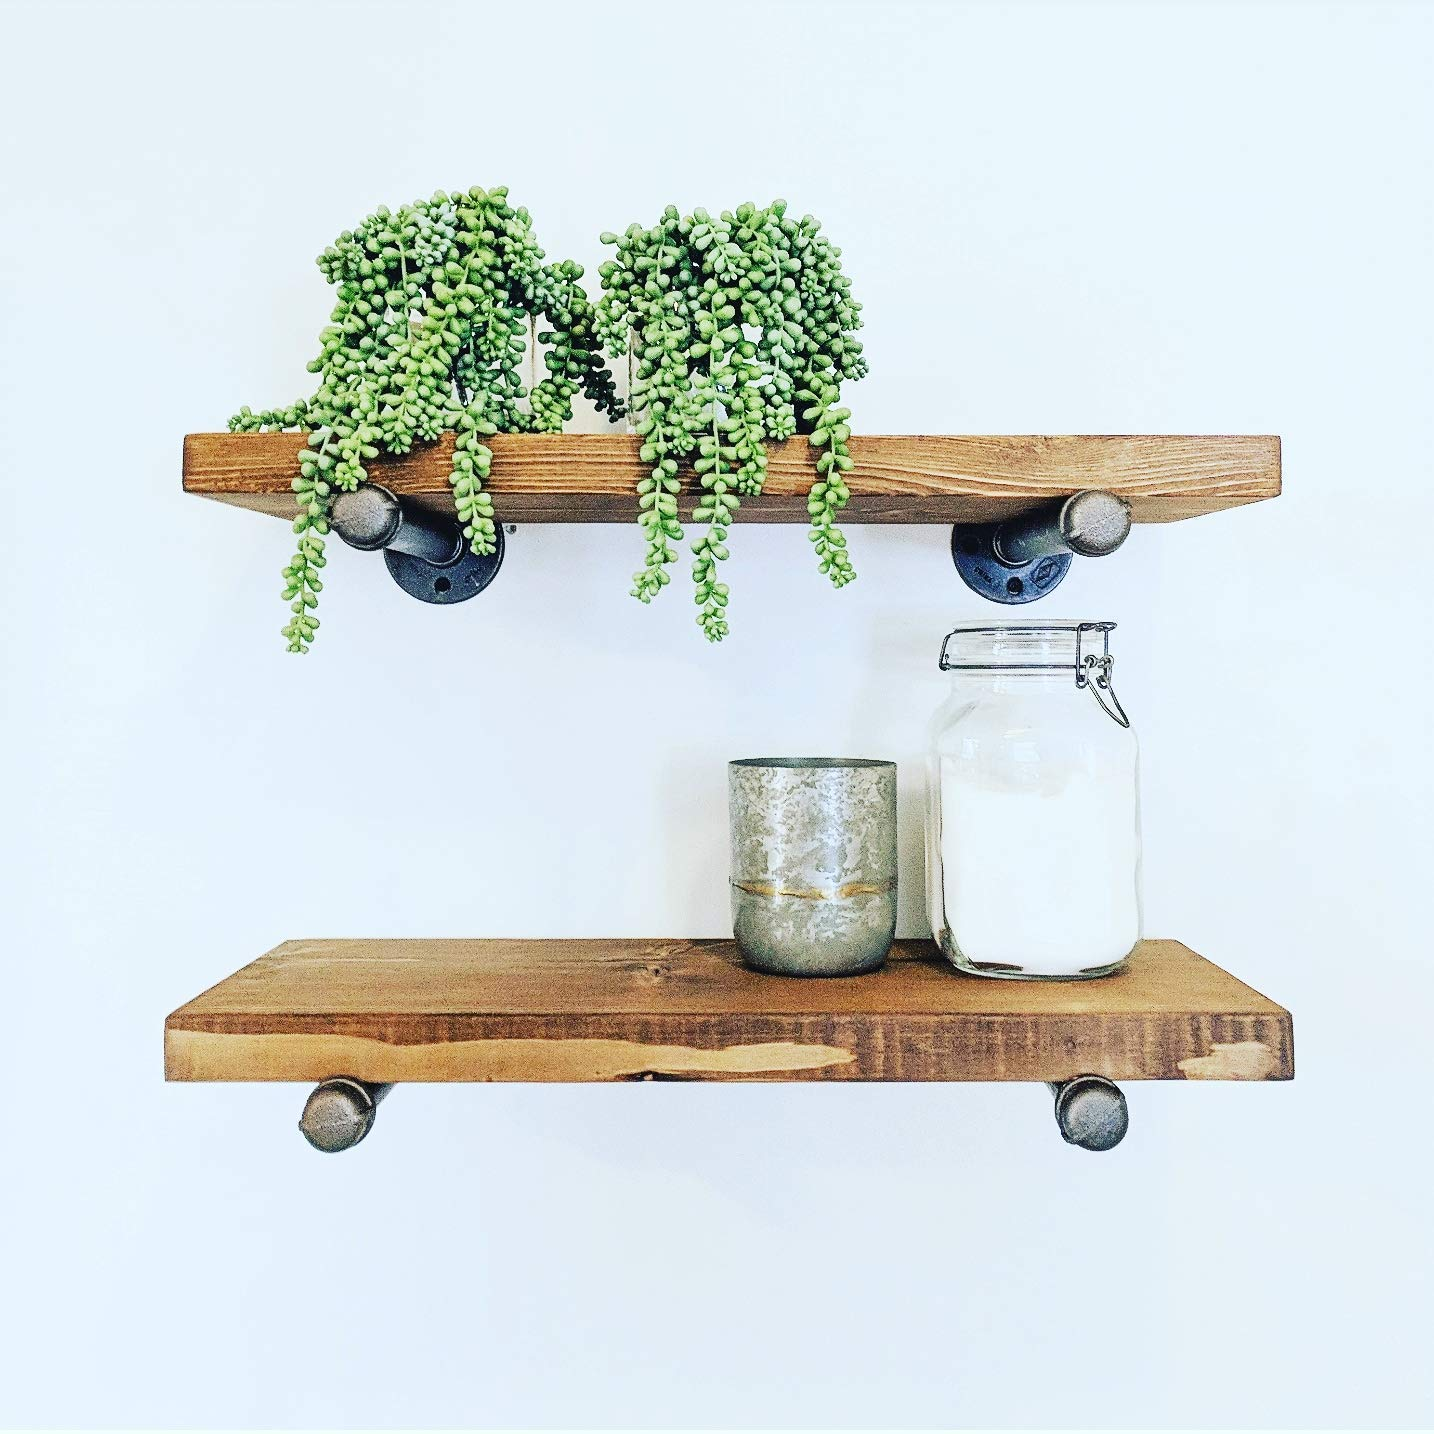 industrial floating shelves inches set rustic inch deep shelf covert gun storage tier shower wood hardware shoe command strips ikea prepac sonoma black triple cubby bench coat